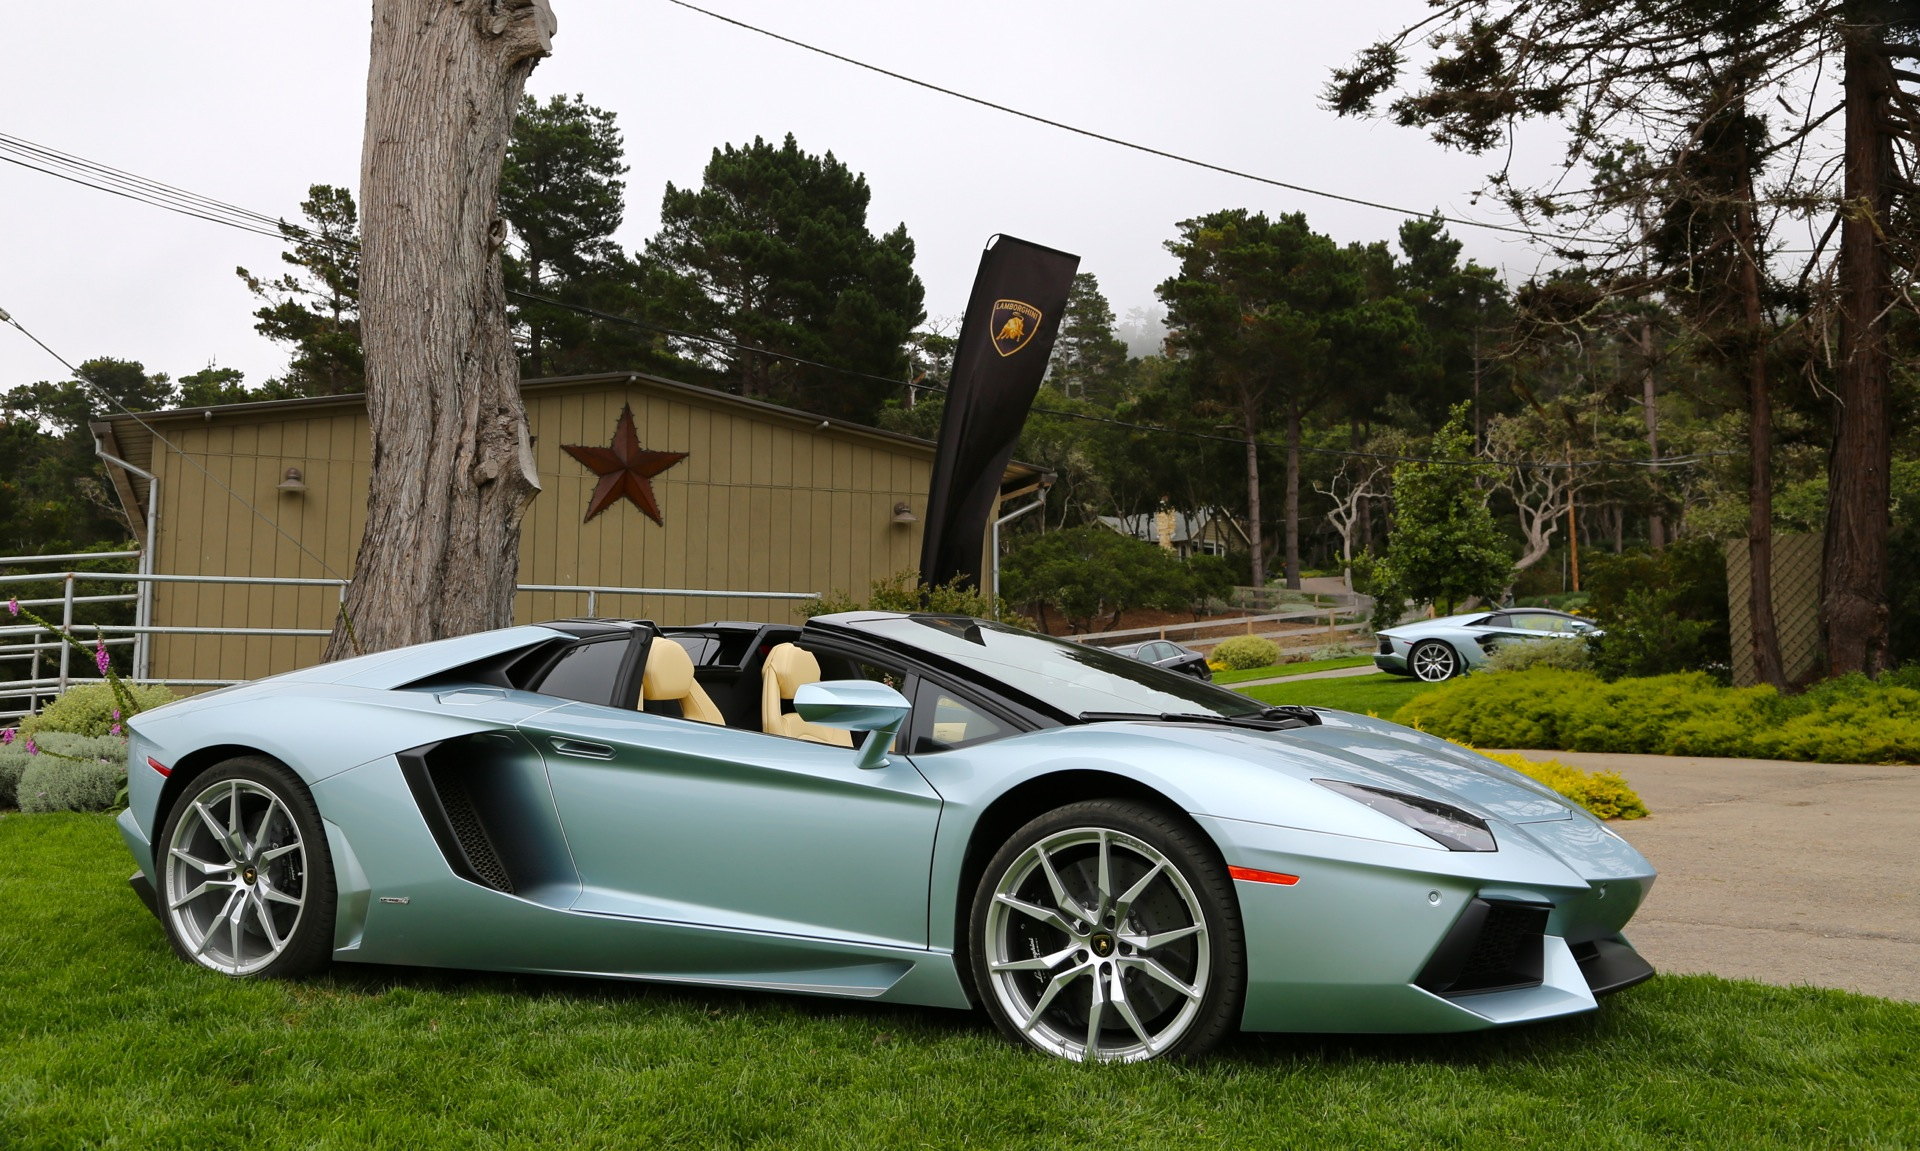 2014 Lamborghini Aventador Review Ratings Specs Prices